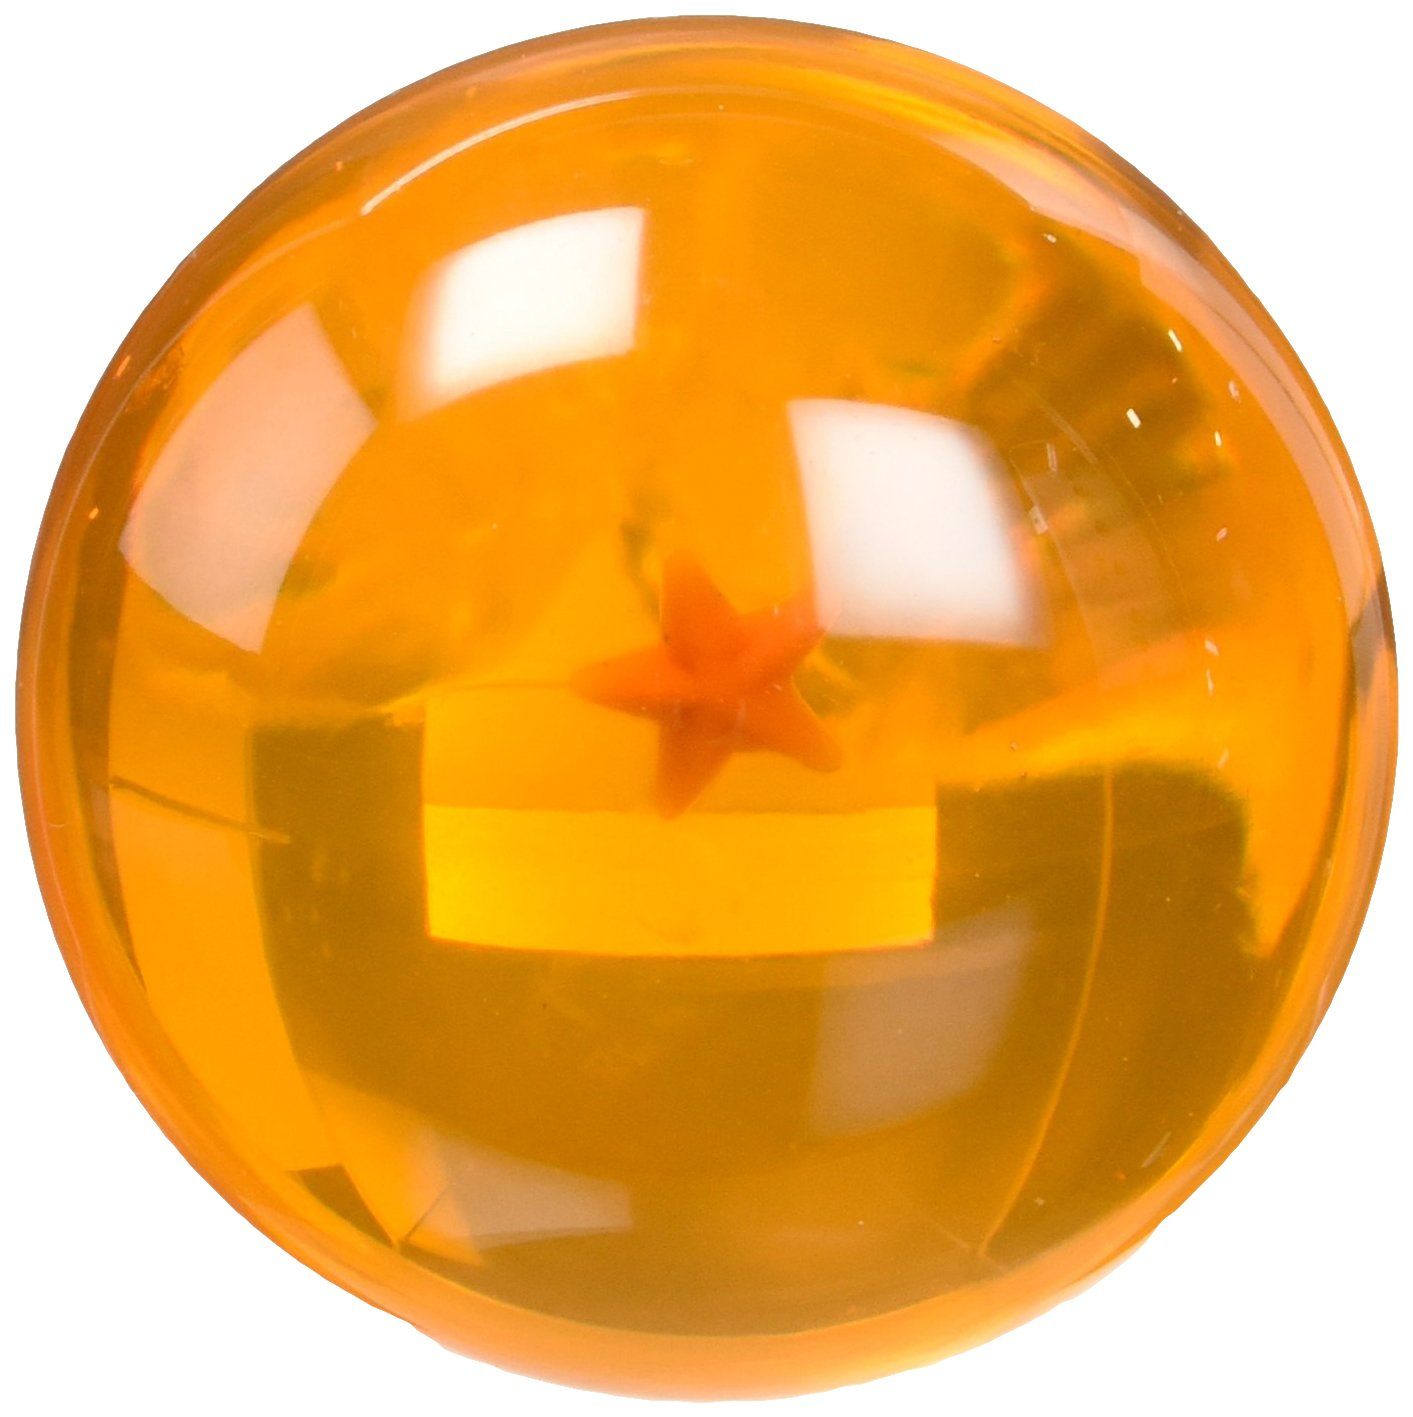 Dragon Balls Replica From Dragonball Z Set of 7cs